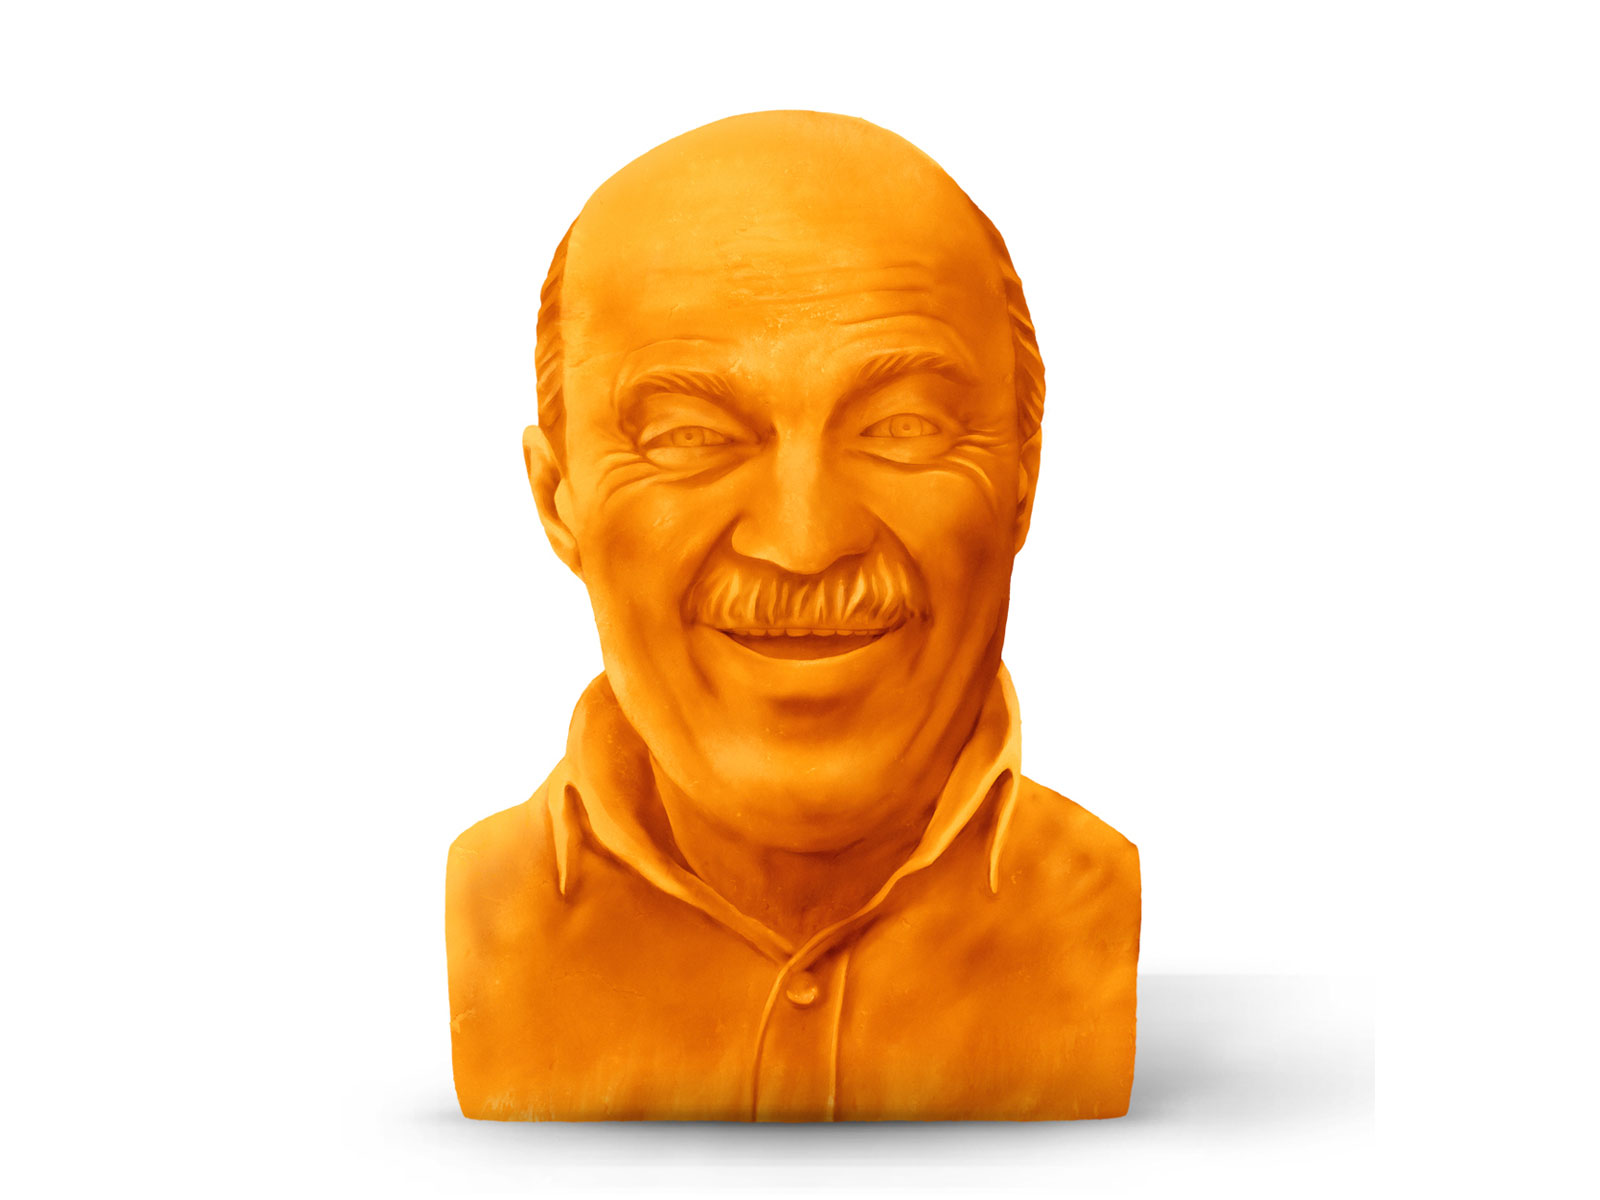 Get a Cheese Sculpture of Your Dad for a Great Cause This Father's Day